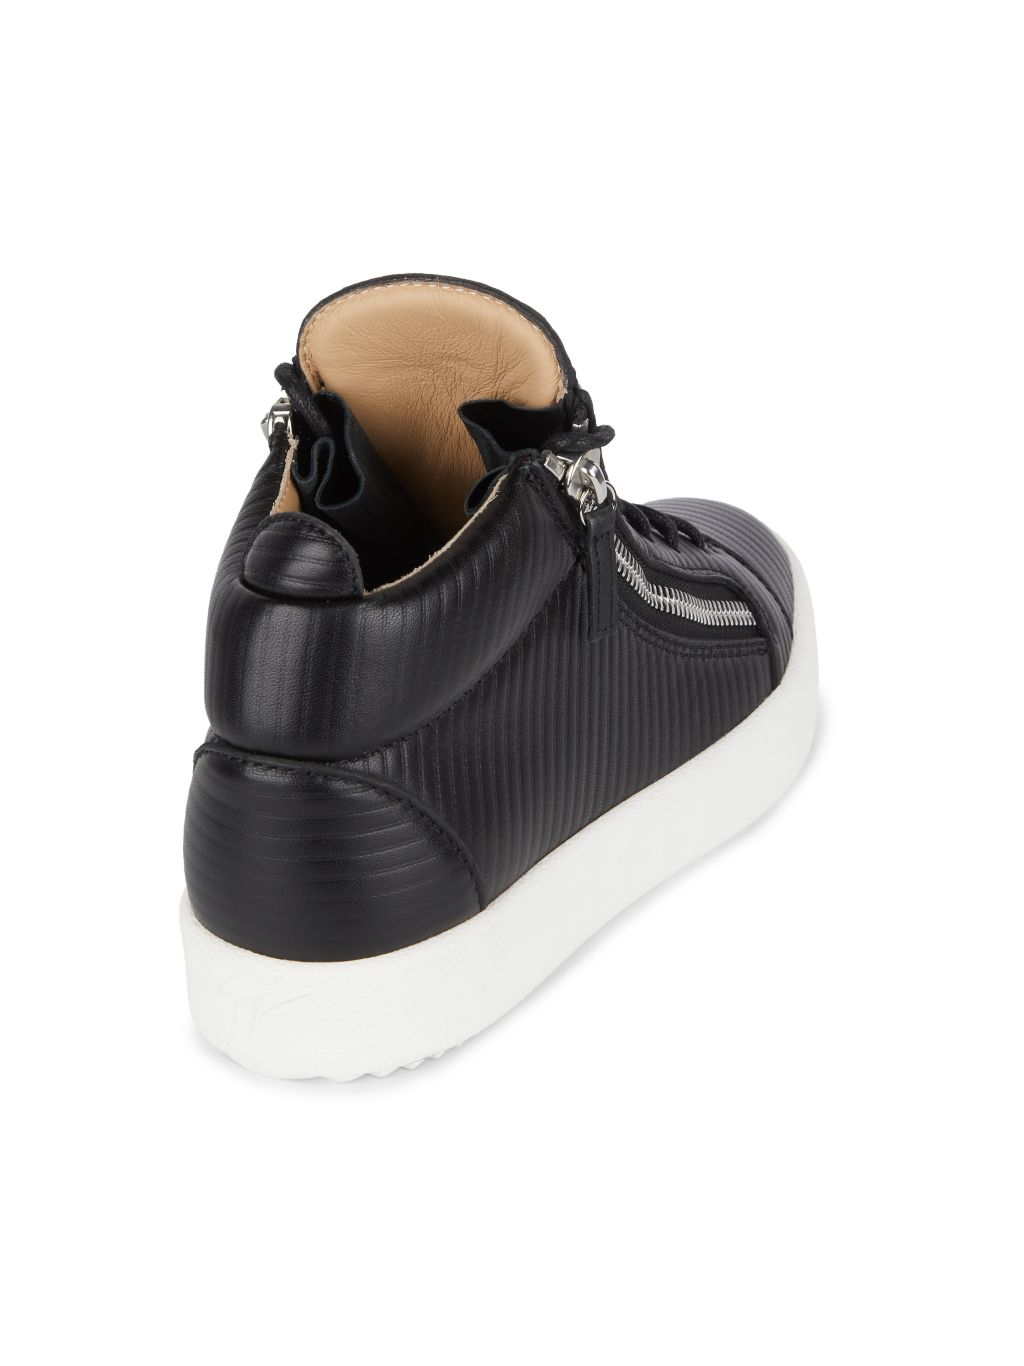 Giuseppe Zanotti Ribbed Double Zip Leather Sneakers